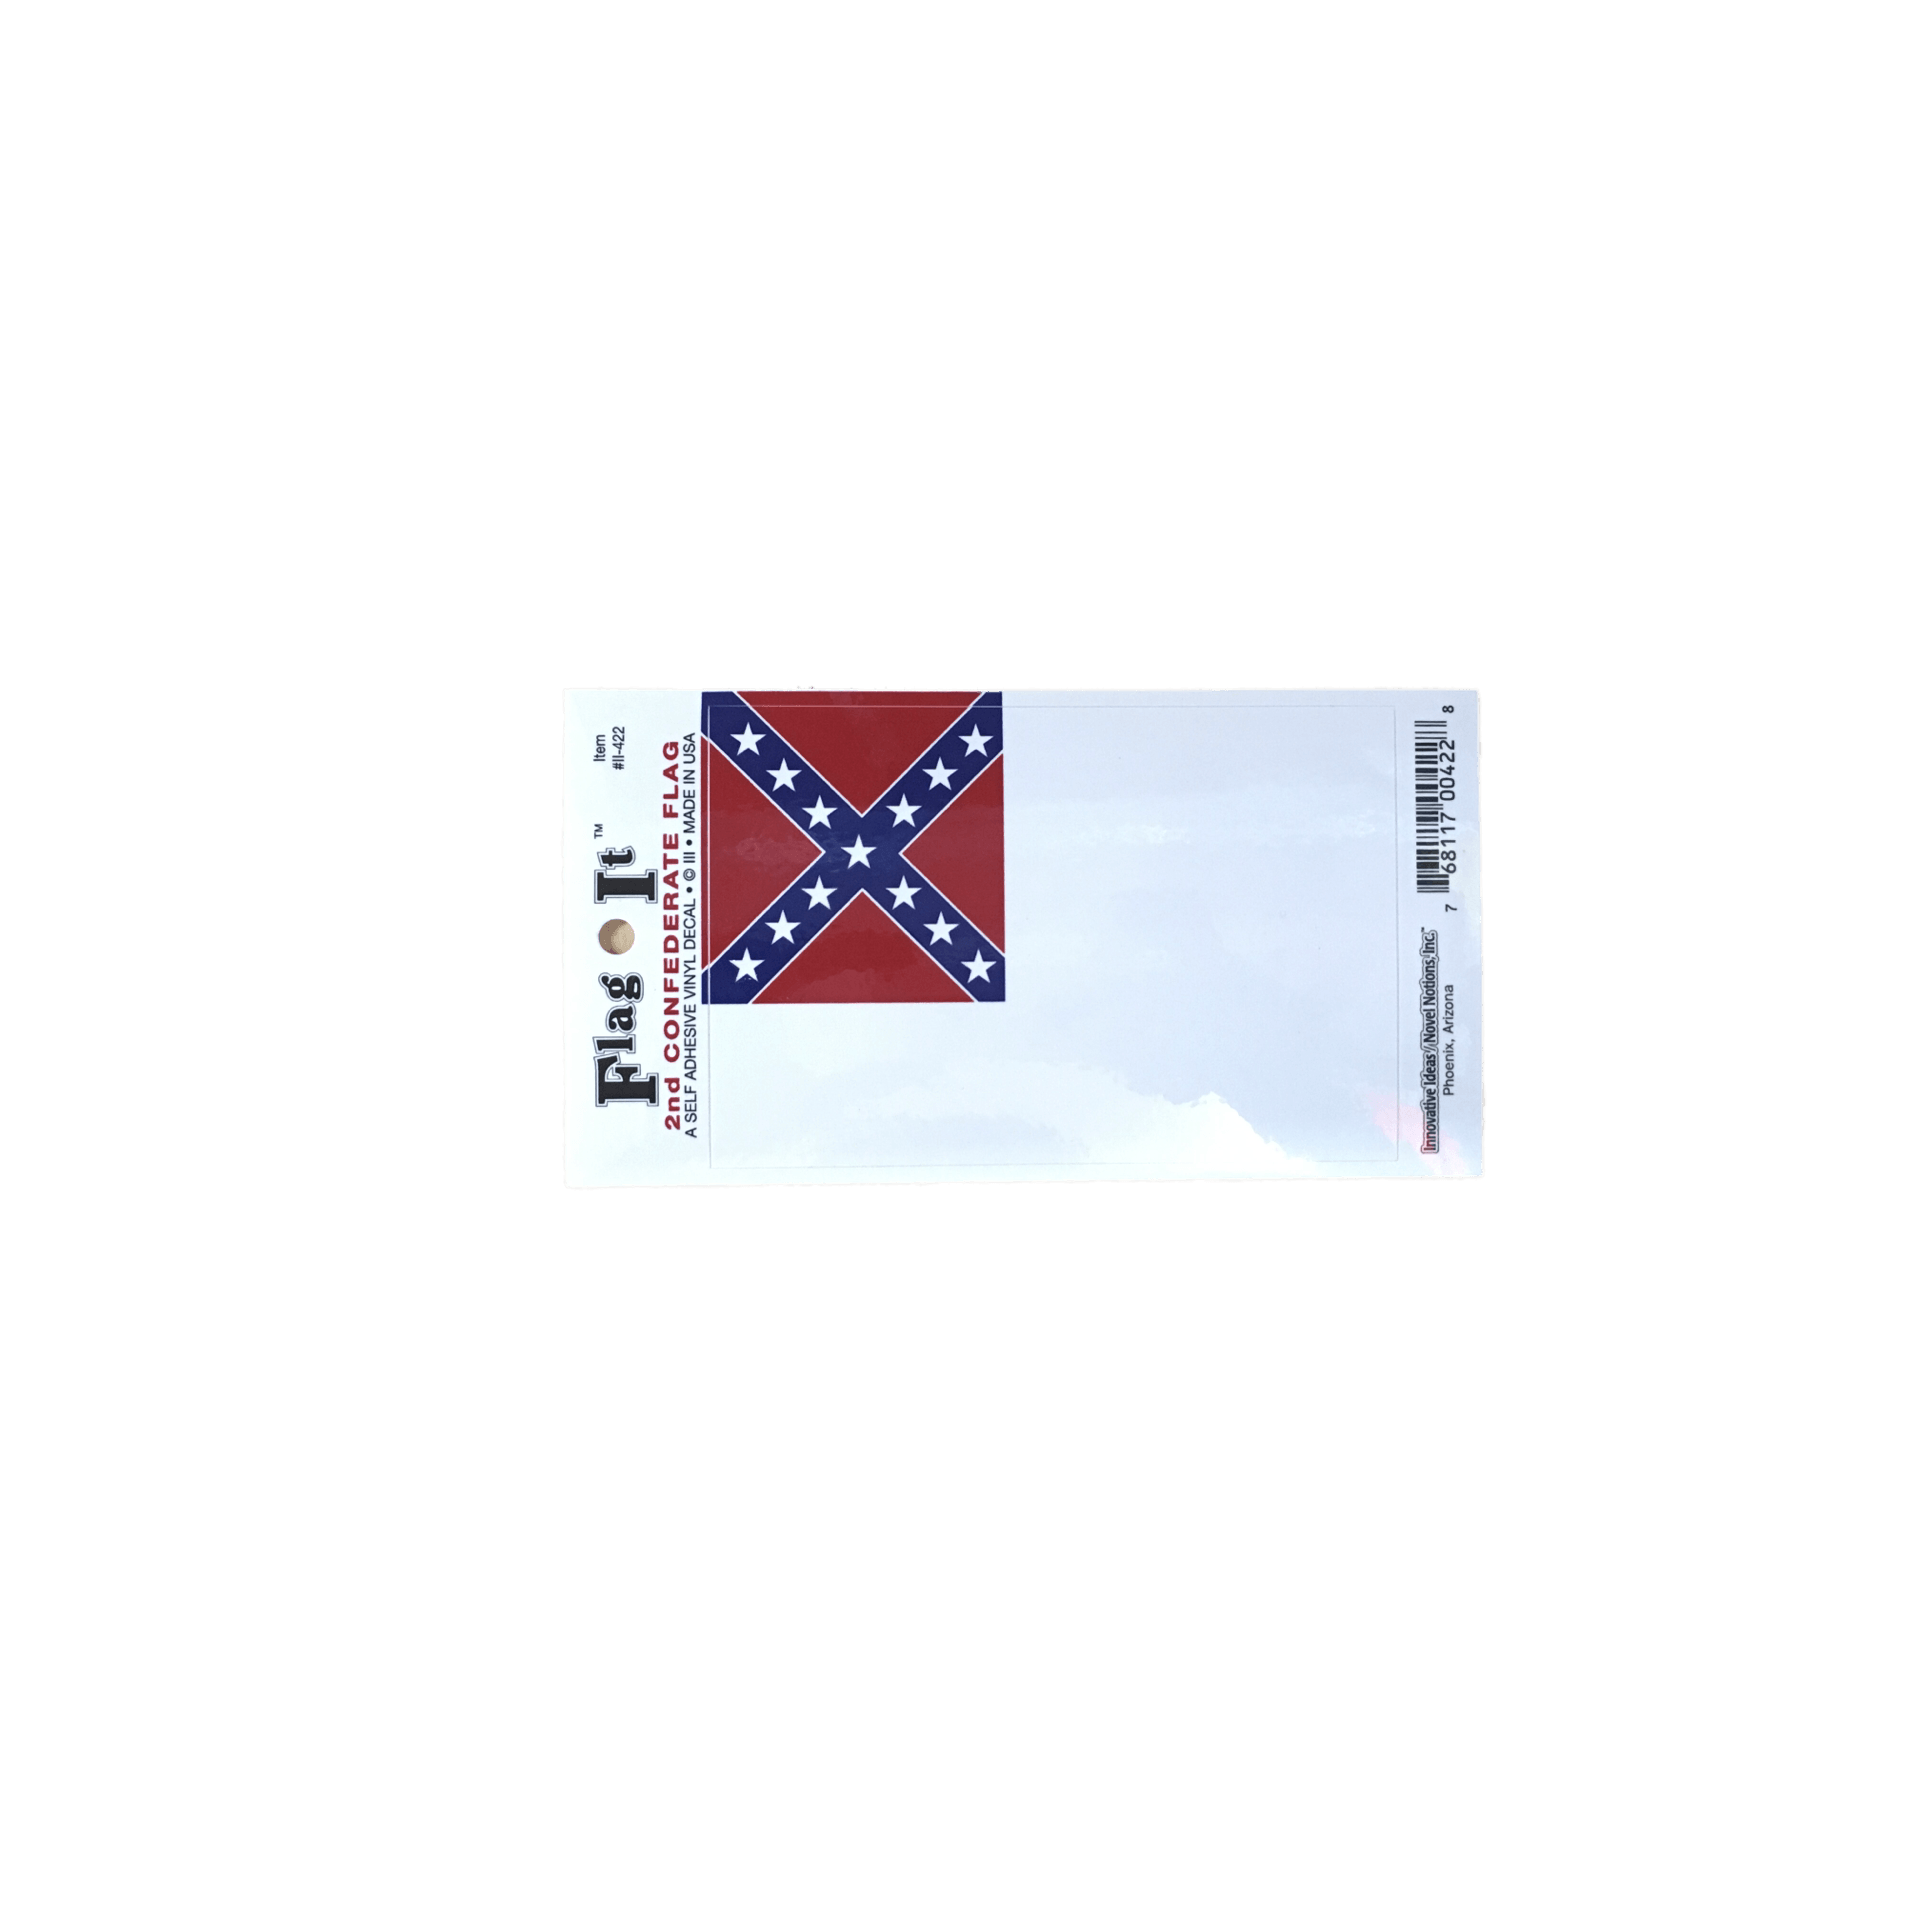 2nd confederate flag sticker smallstickerthe dixie shop 14558071 pngv1536520349